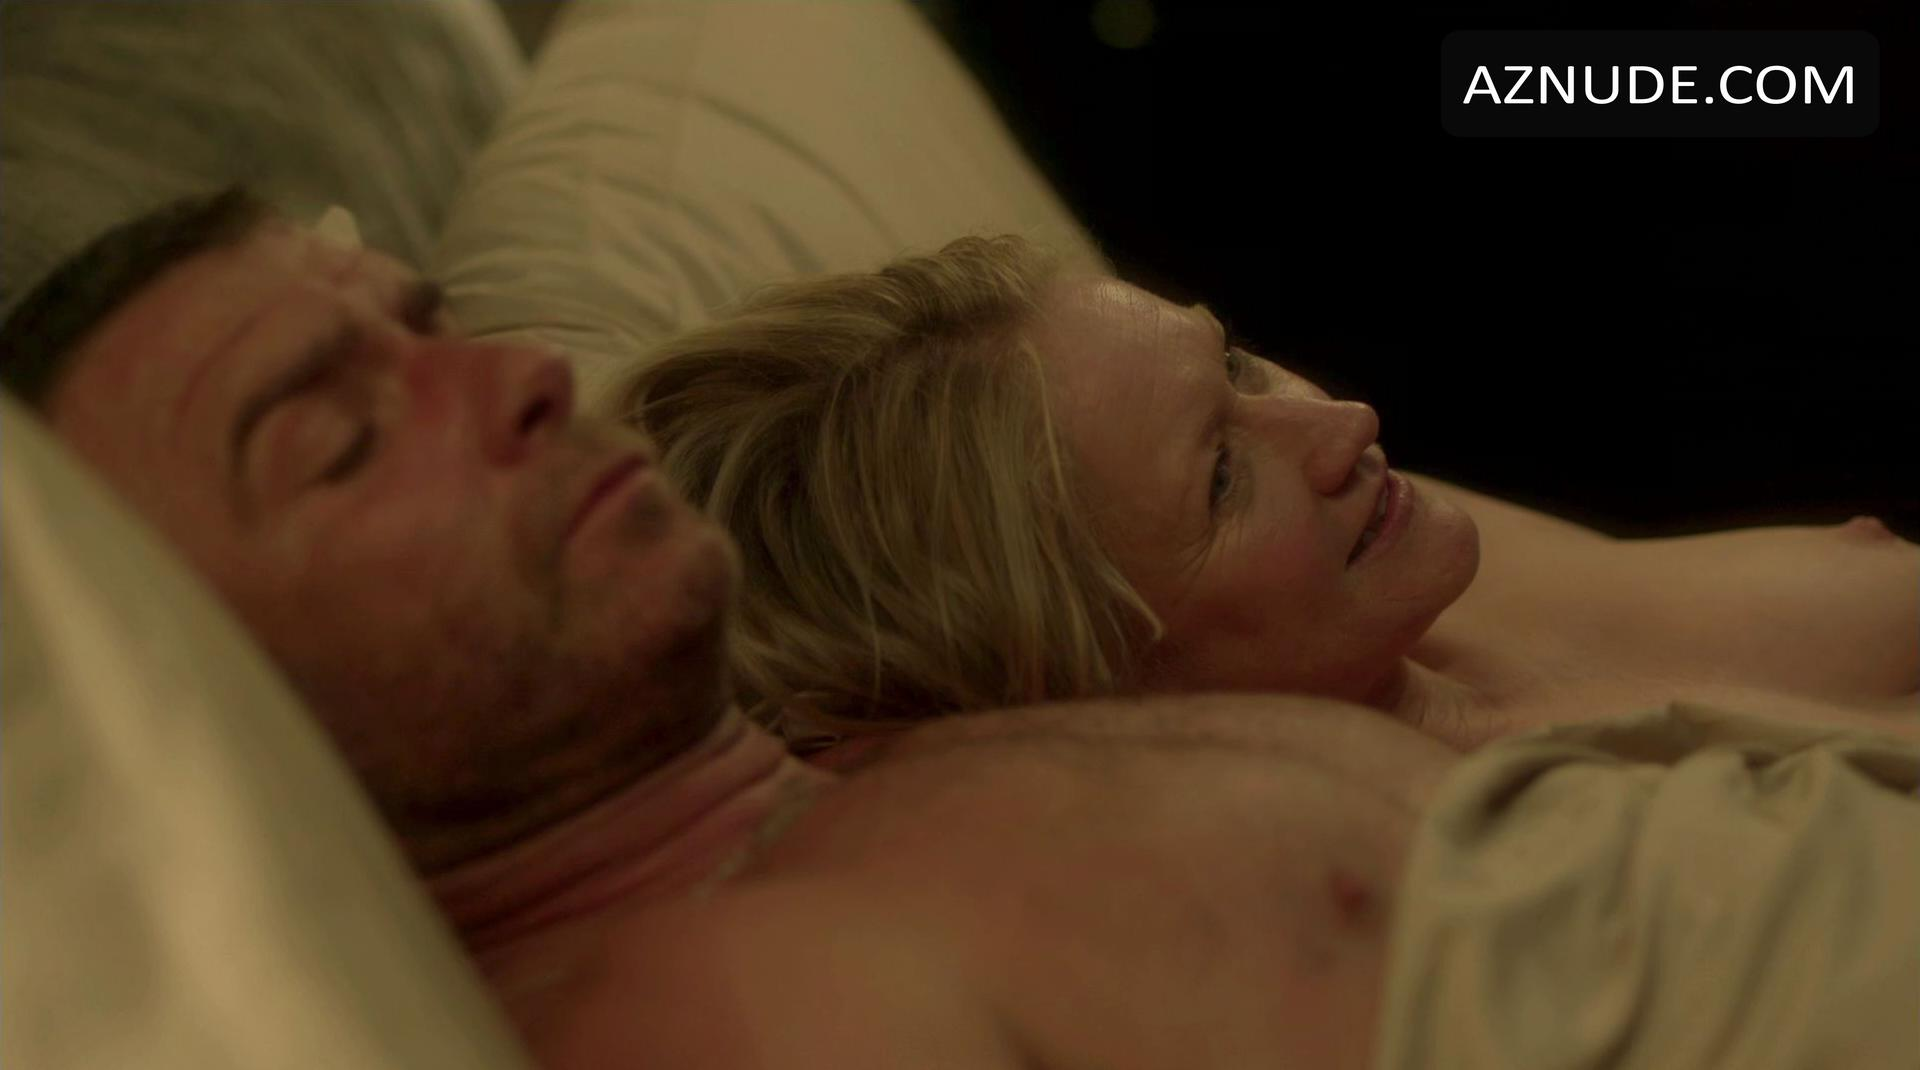 Think, that Paula malcomson nude pictures